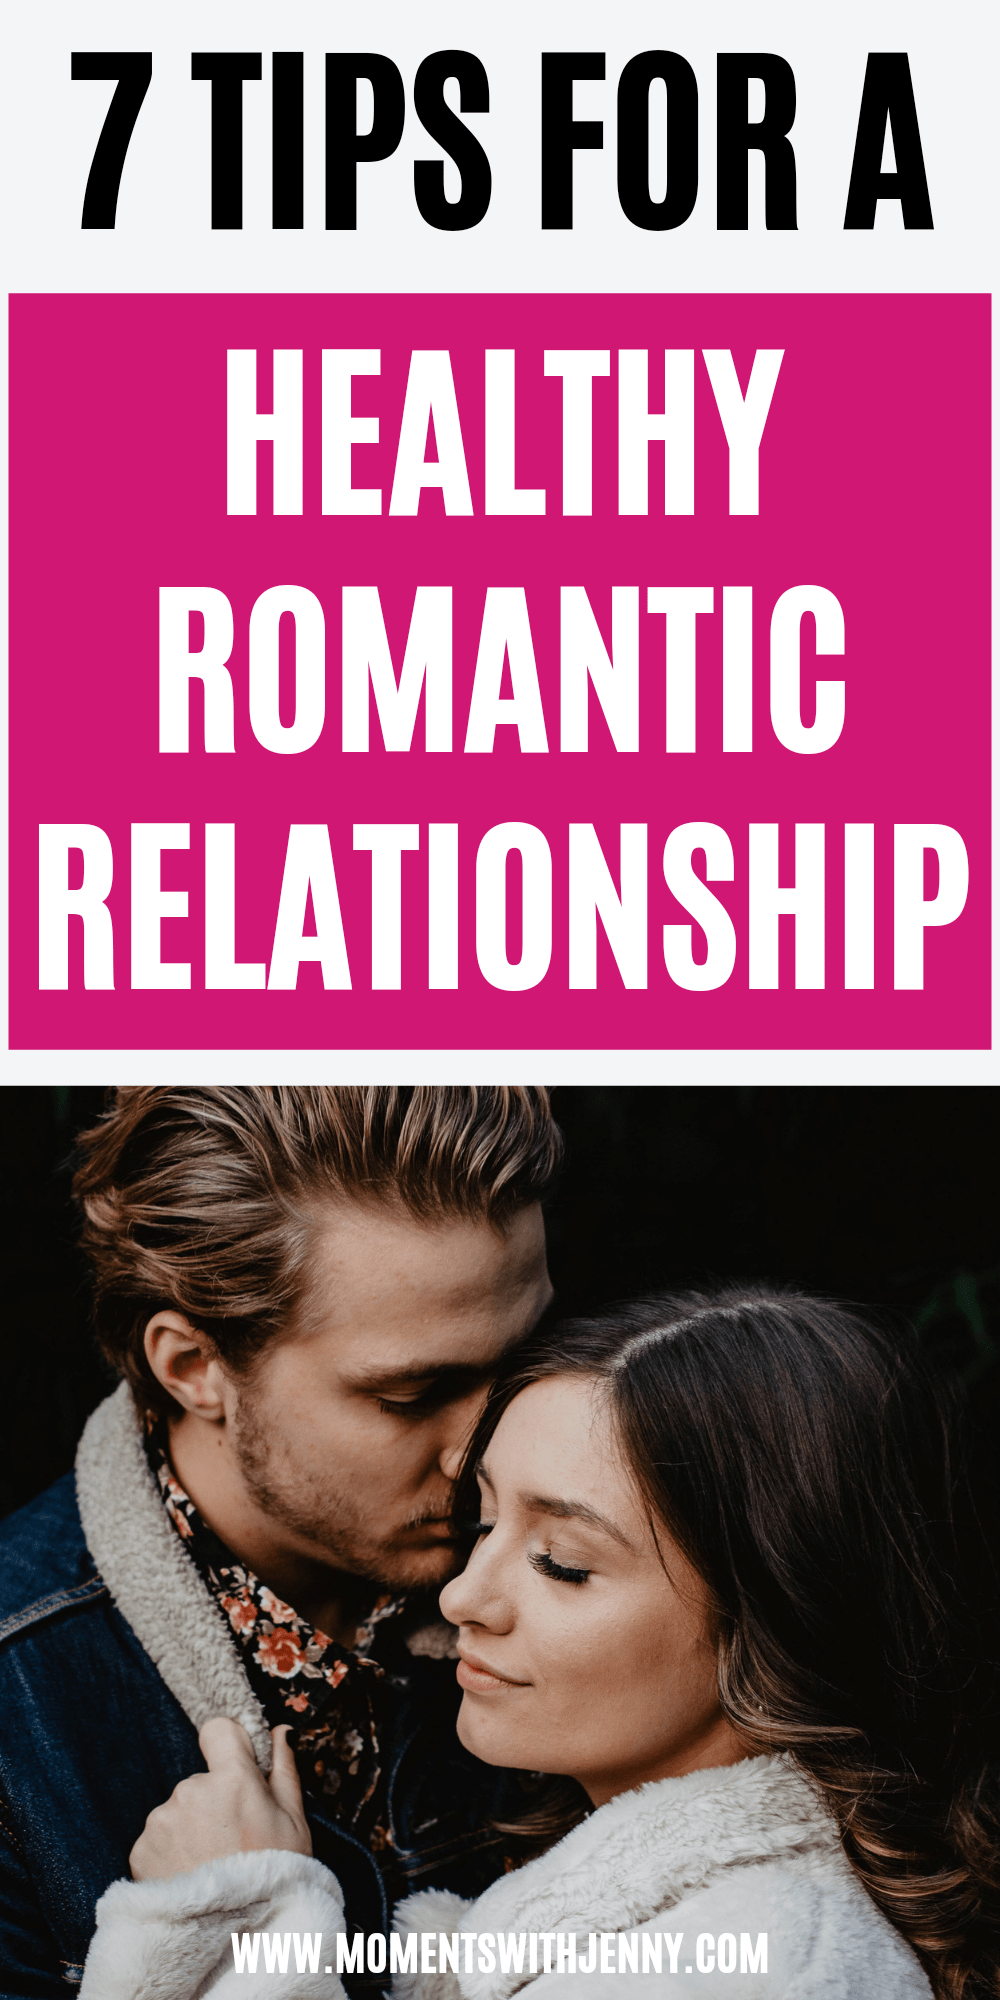 7 tips for building healthy romantic relationships